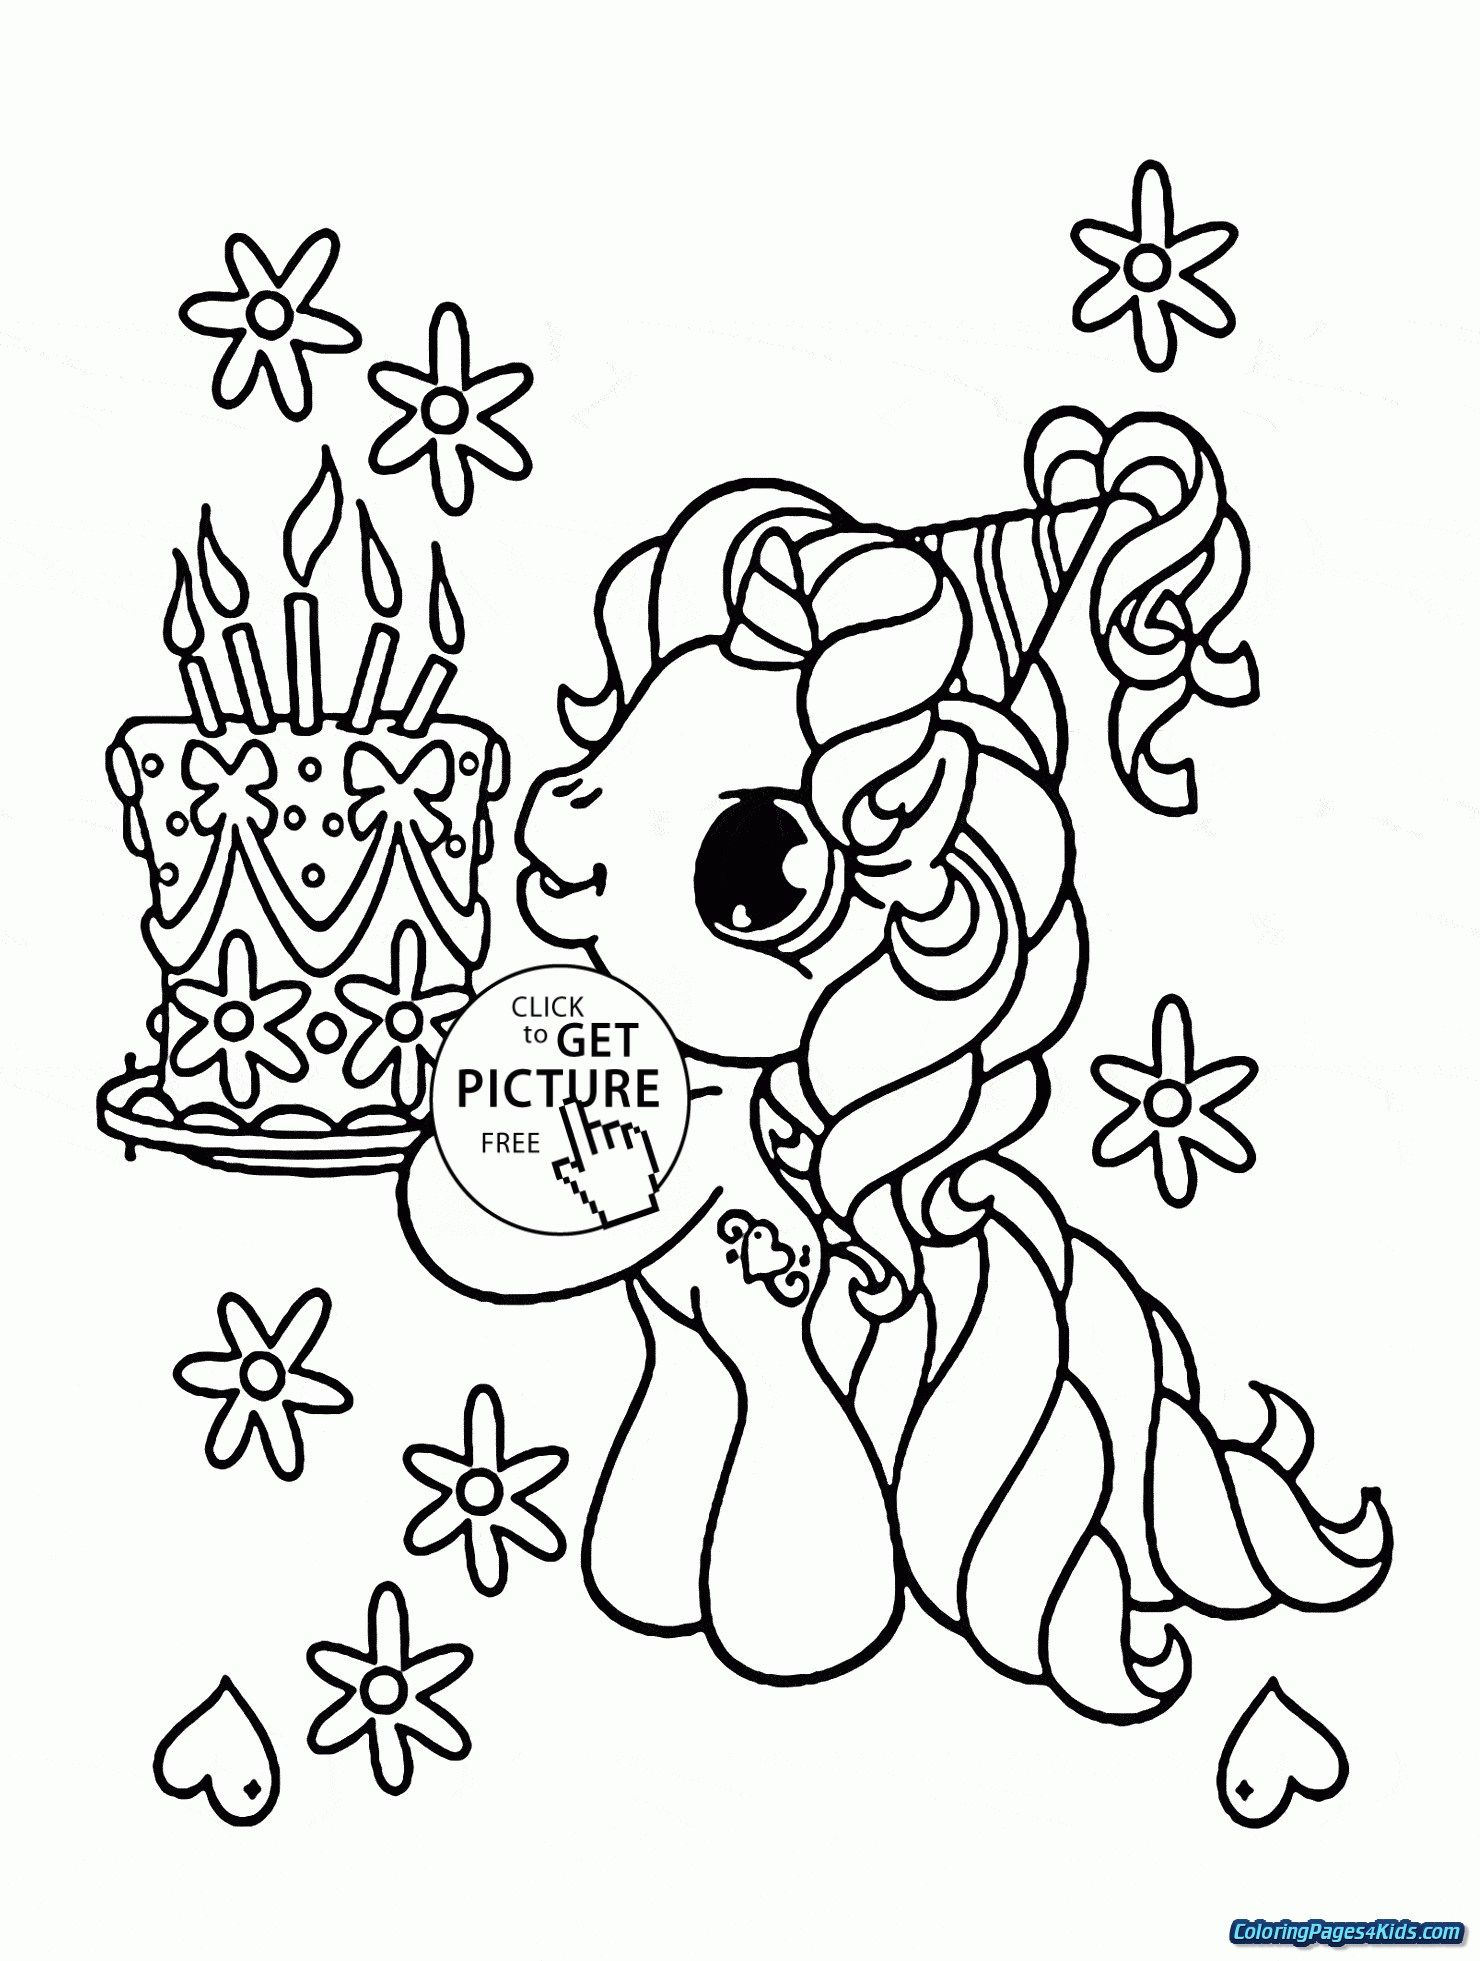 30 Marvelous Photo Of Birthday Cake Coloring Pages Birthday Cake Coloring Pages Unicorn Coloring Pages Birthday Coloring Pages Happy Birthday Coloring Pages